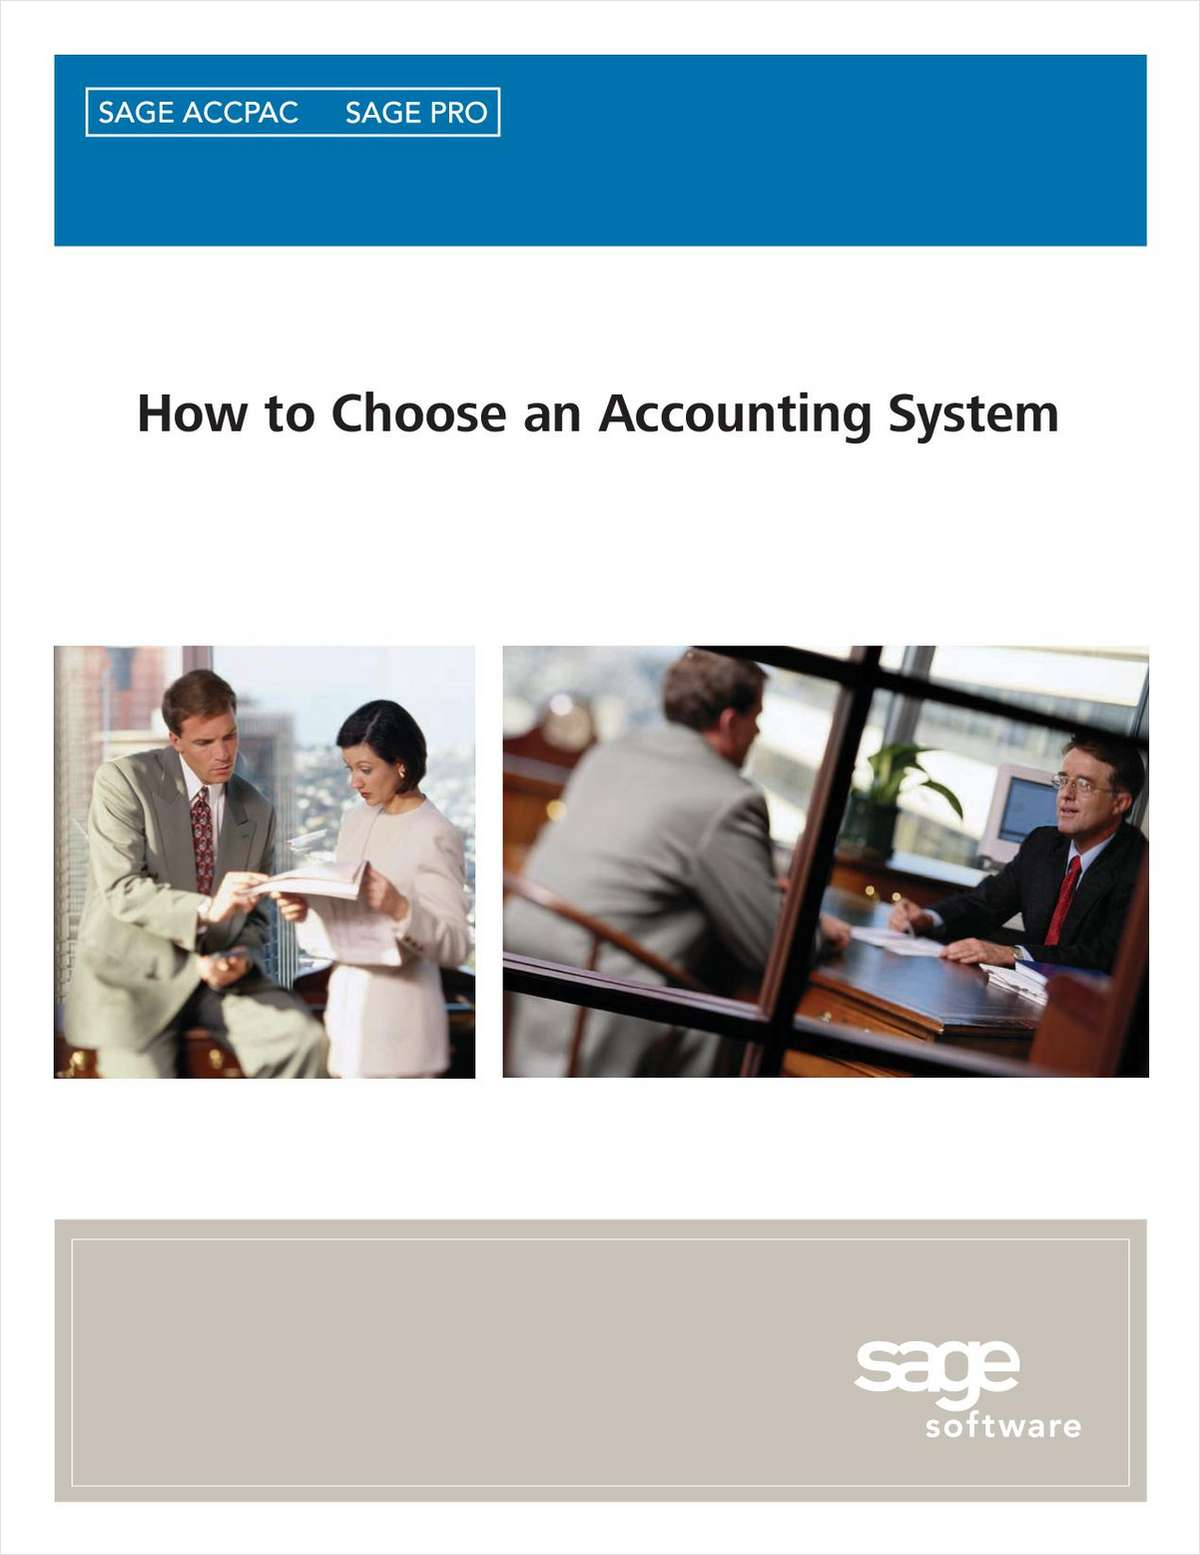 5 Mistakes to Avoid When Choosing Accounting Software